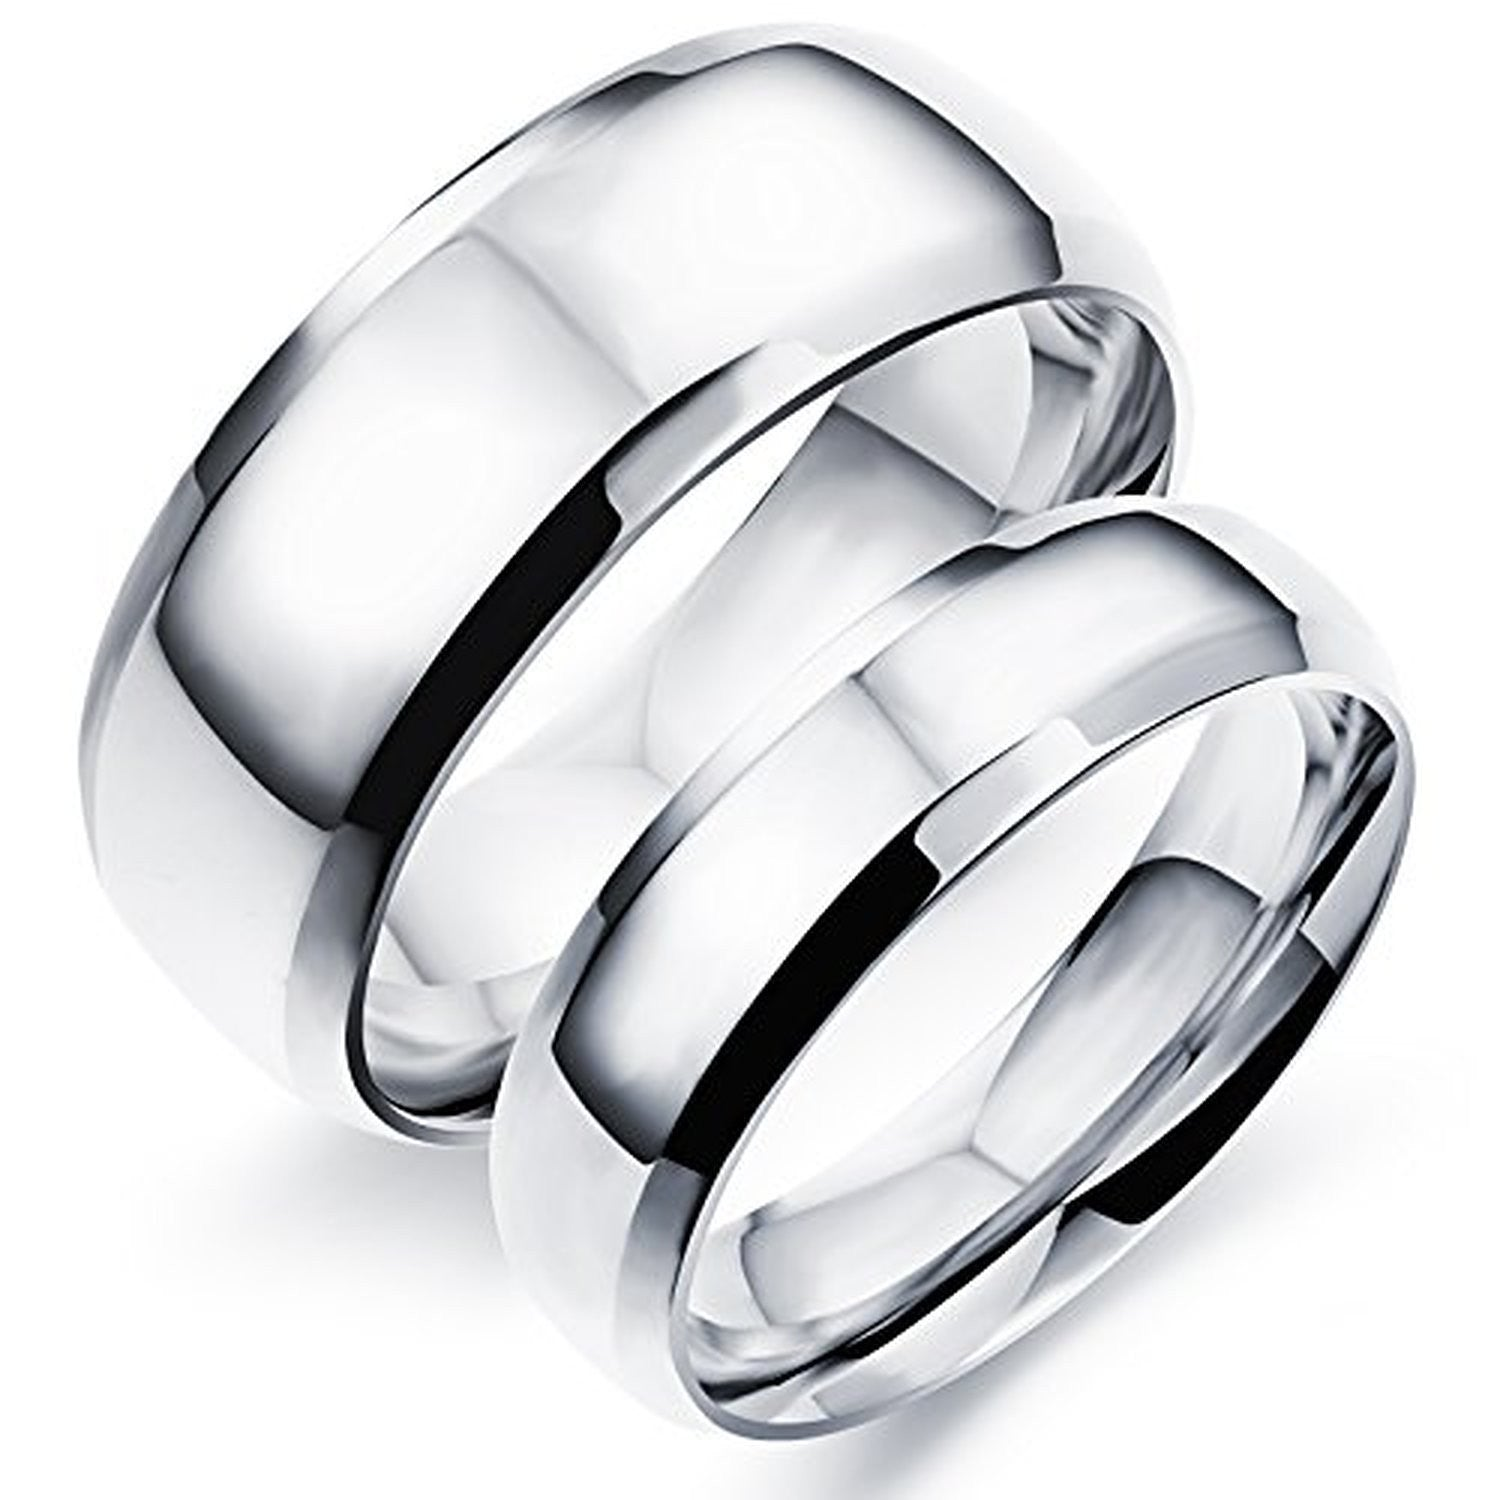 stainless color steel couple cz rings pair stone with evermarker new wedding gold fashion fresh